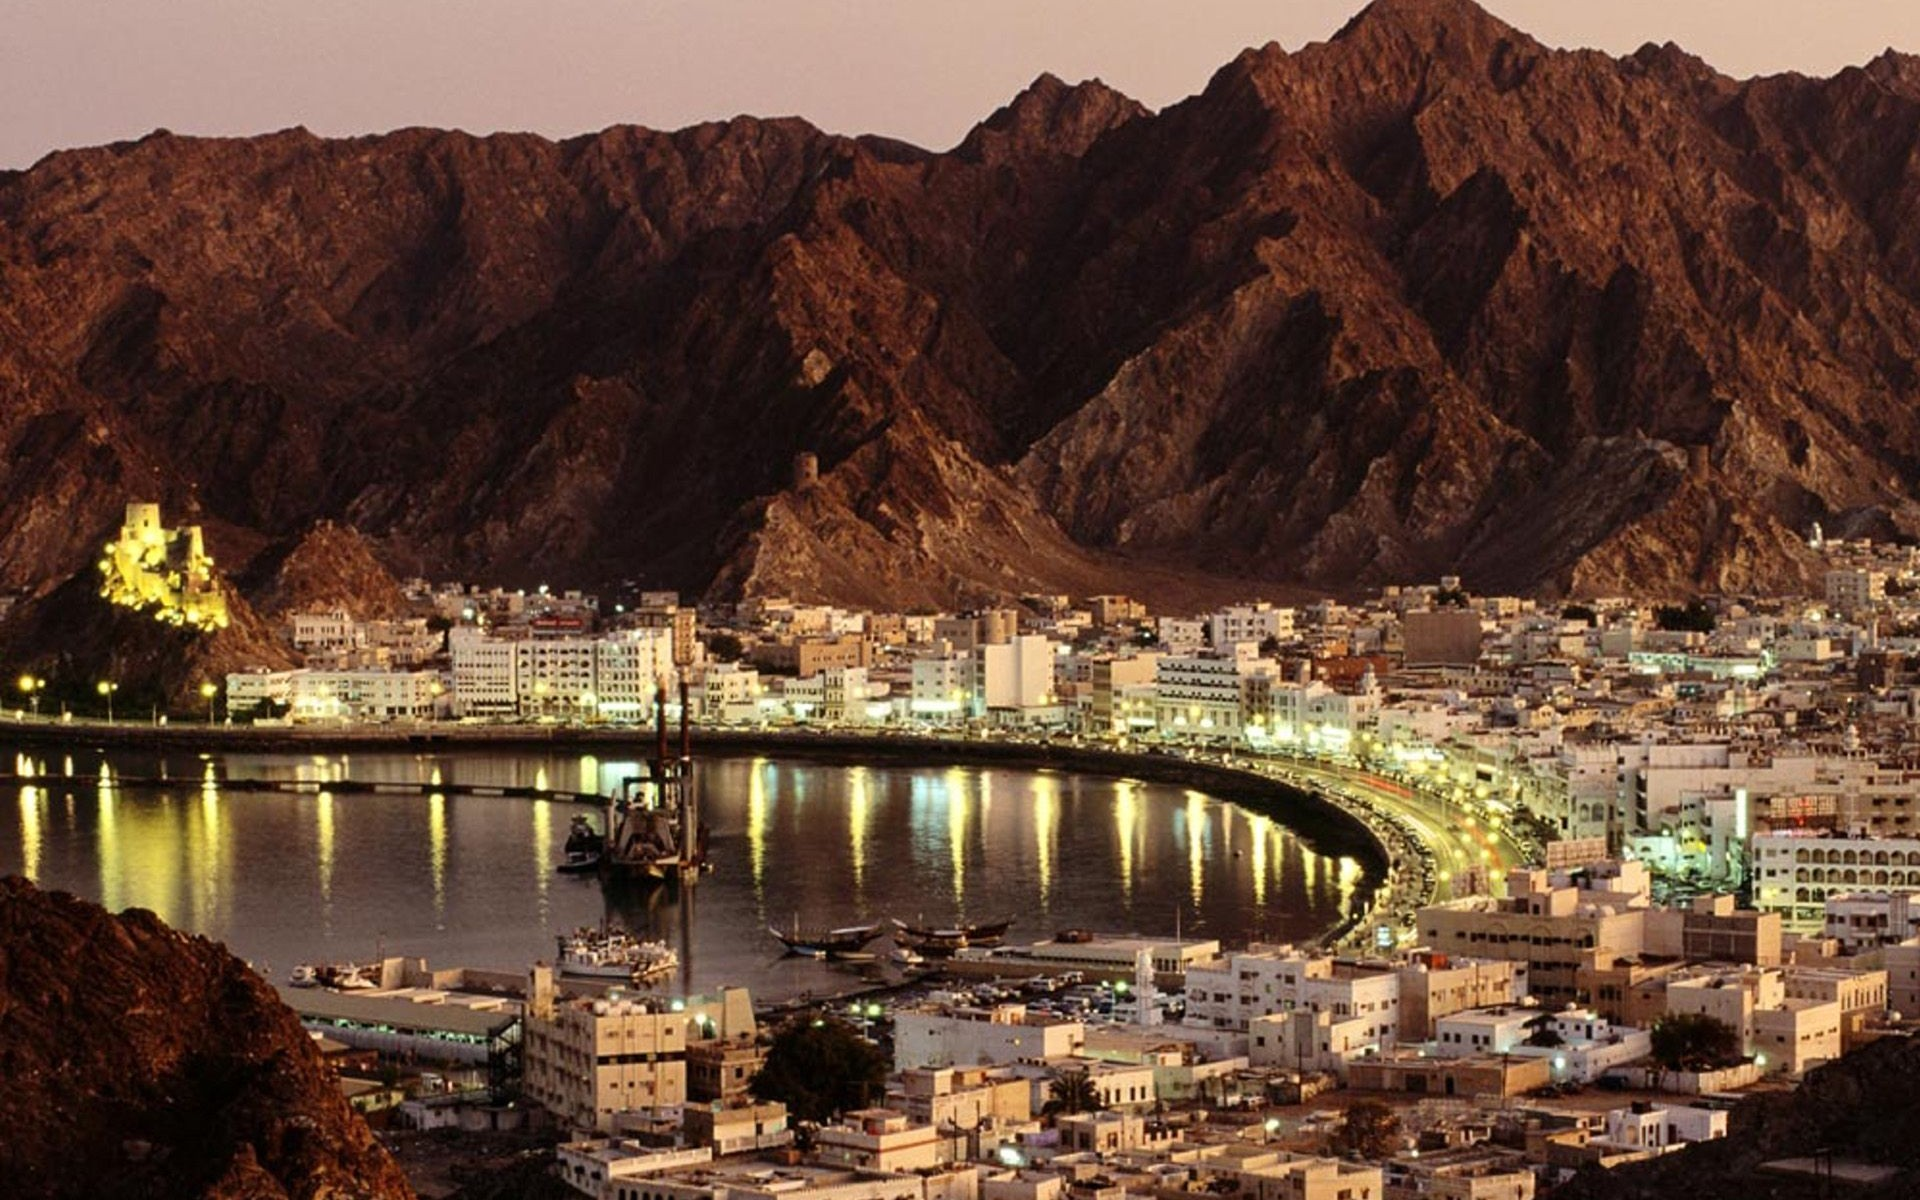 Muscat, capital of Oman